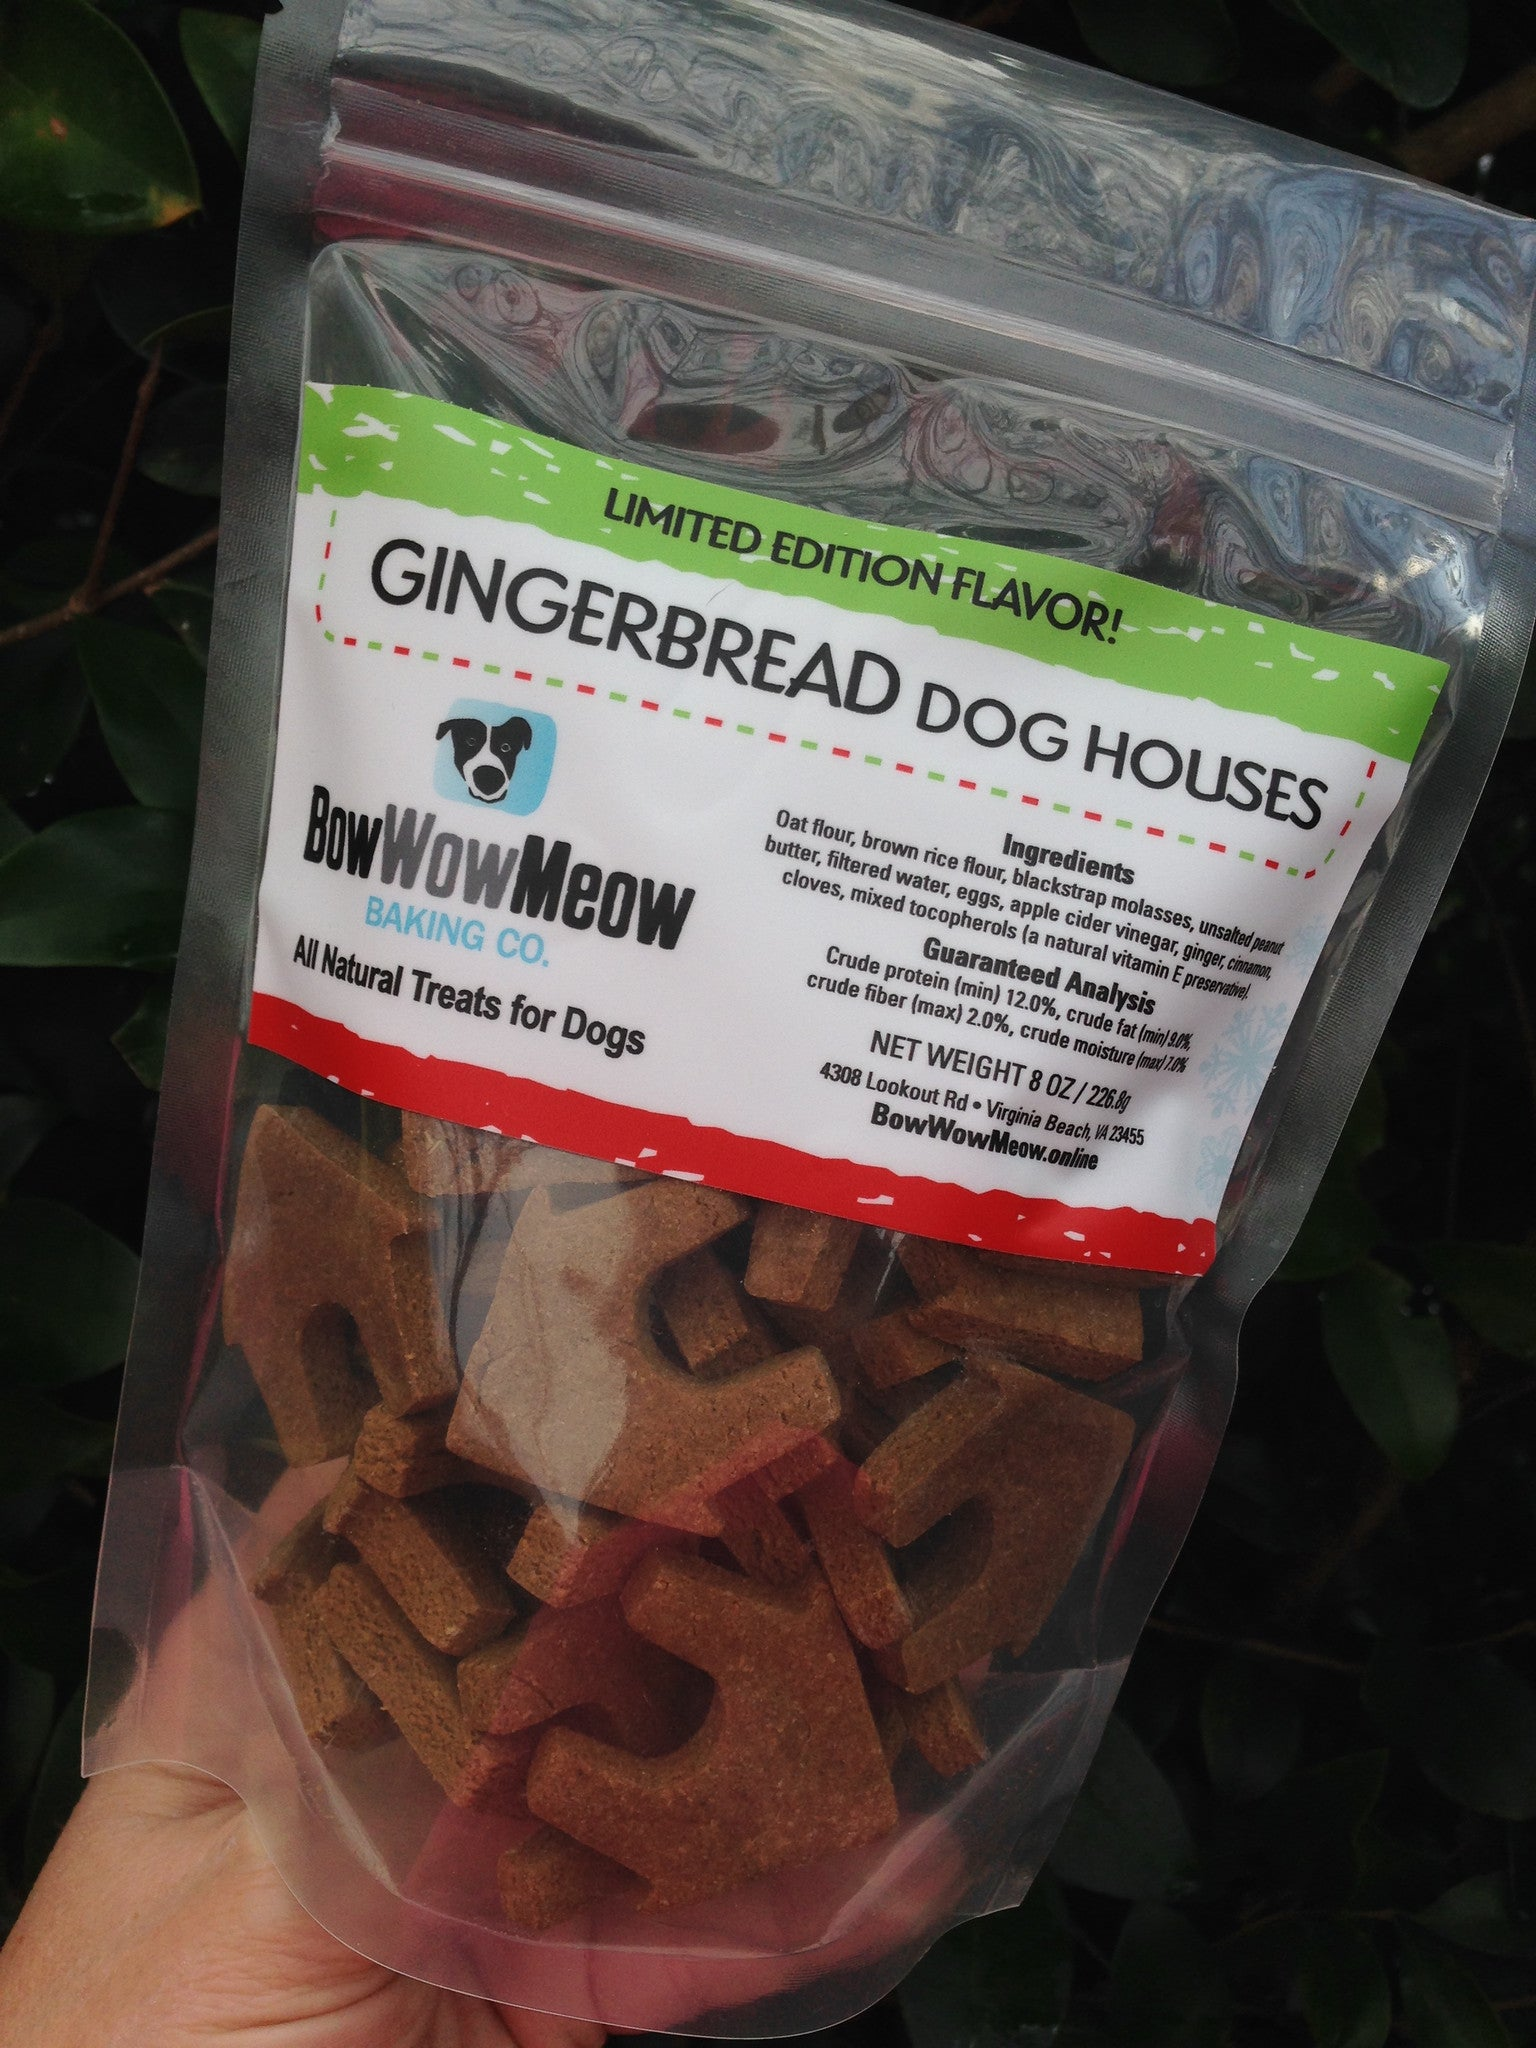 All Natural Gingerbread Dog Treats